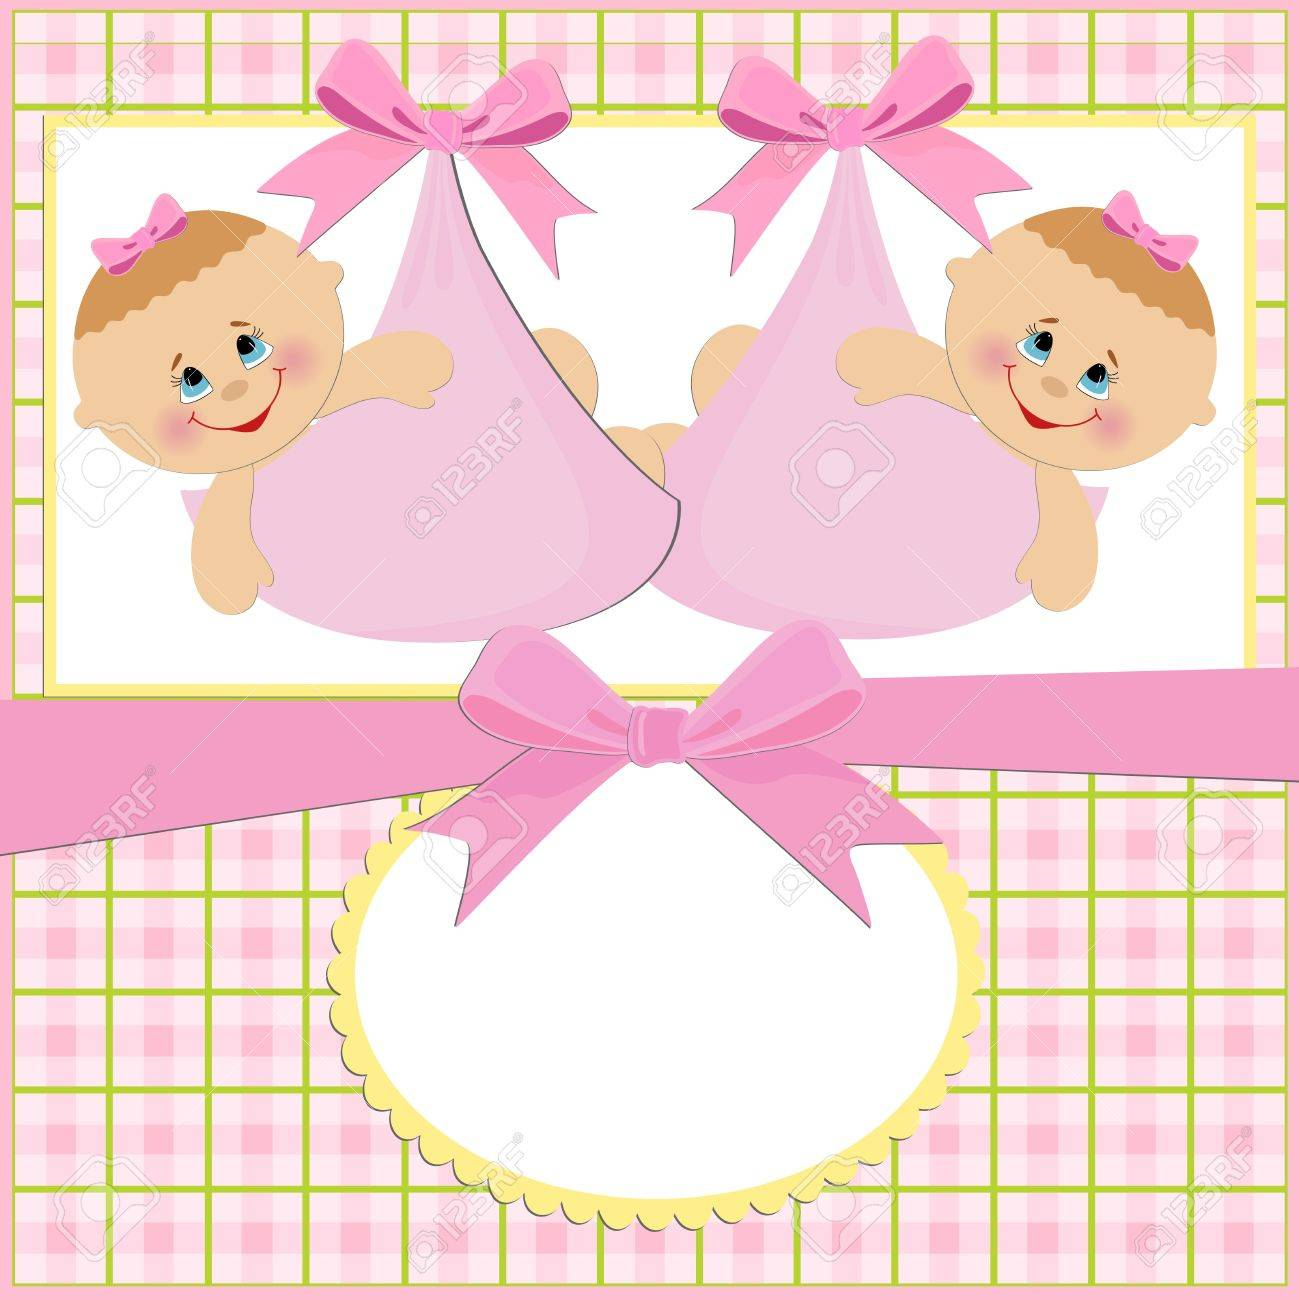 Baby greetings card with twins girls - 8265204